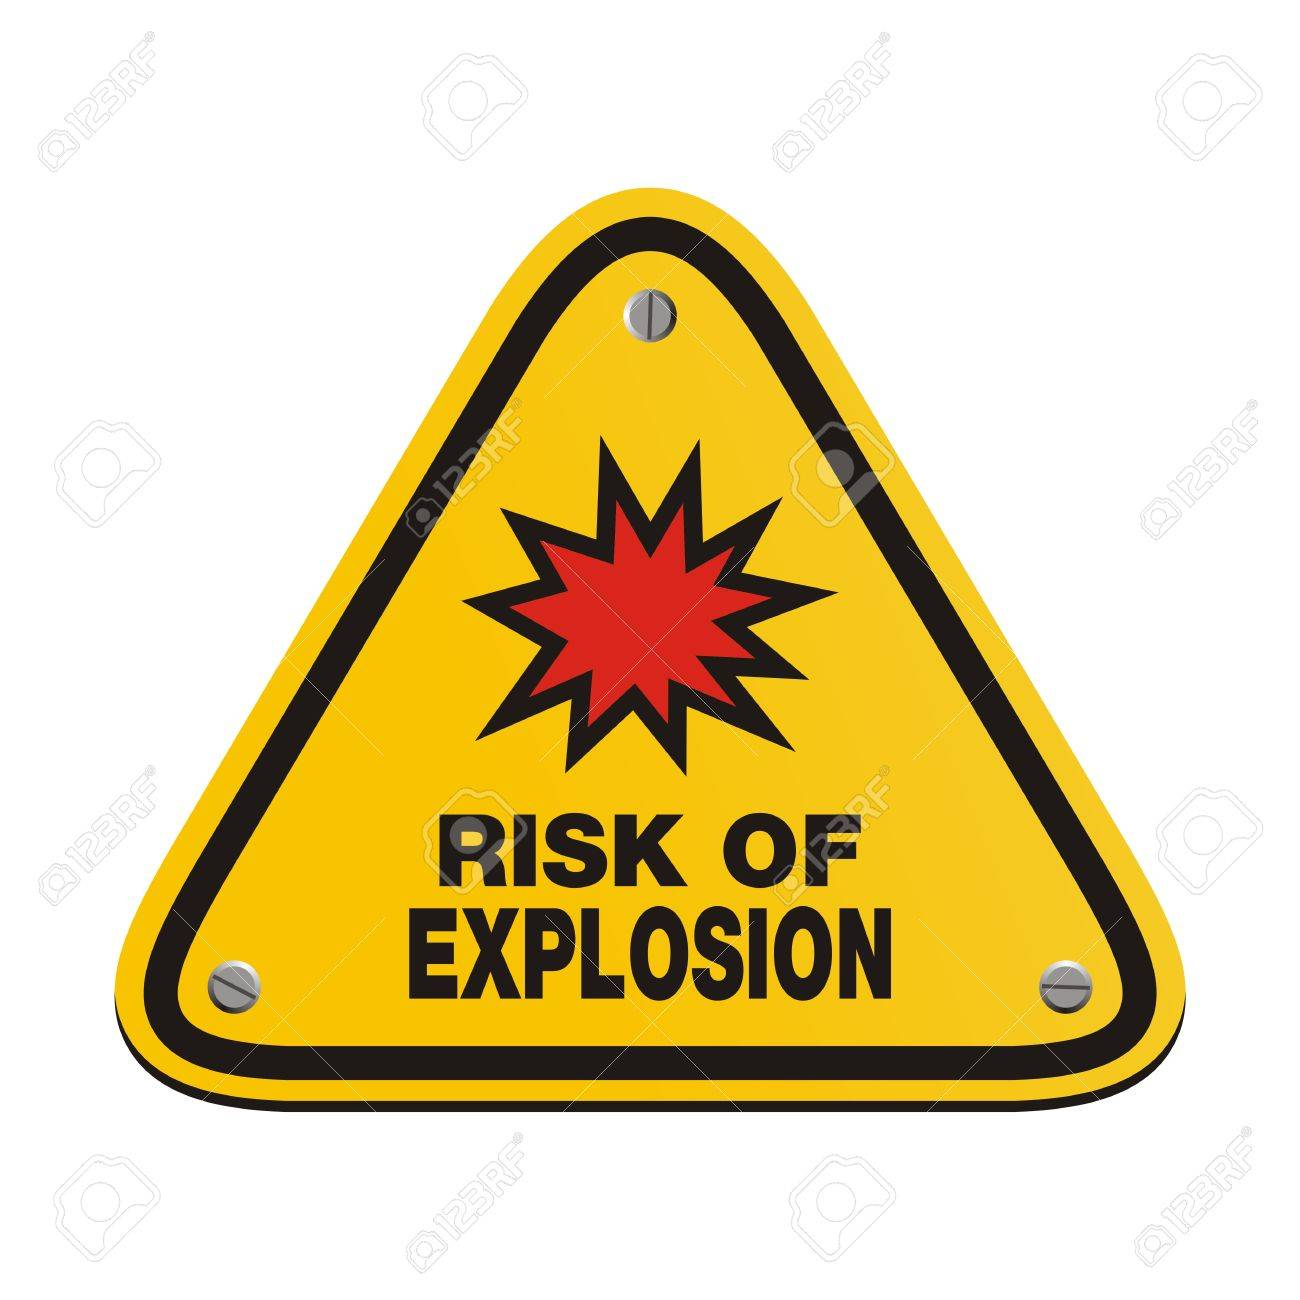 risk of explosion - triangle sign Stock Vector - 24062121